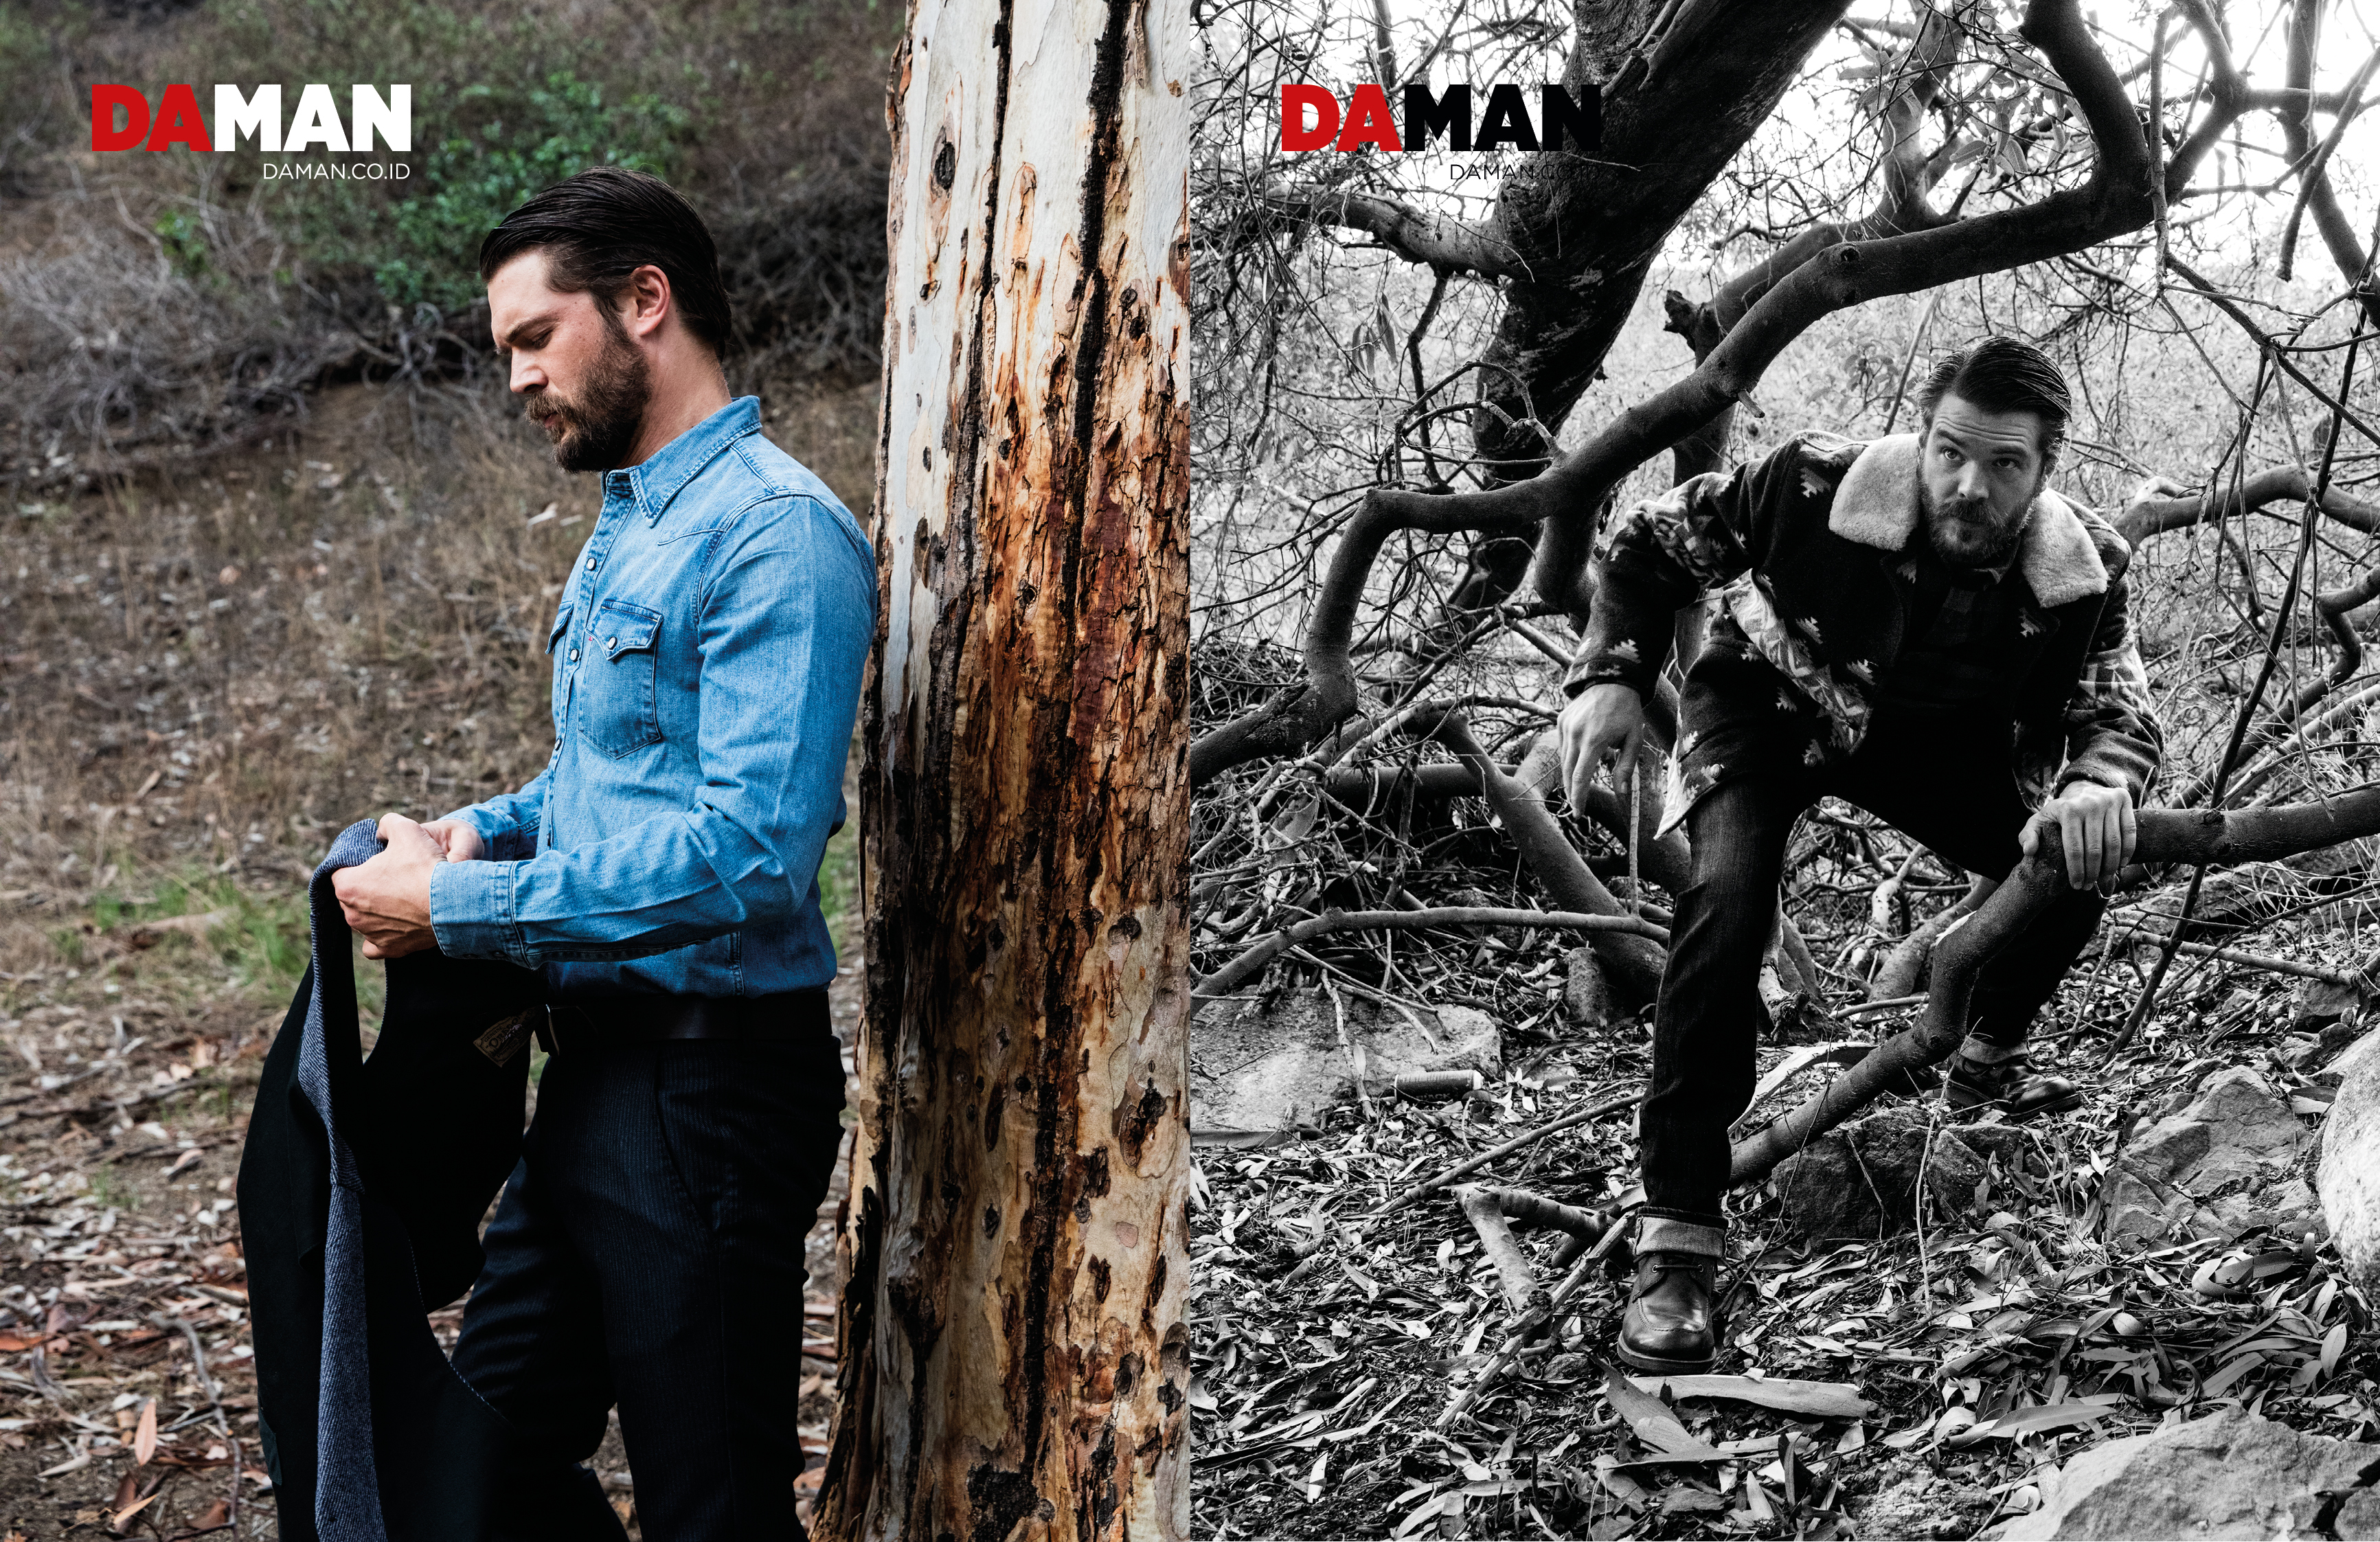 FEATURE_HTGAWM_How to Get Away with Murder_Charlie Weber_1201_DPS_2